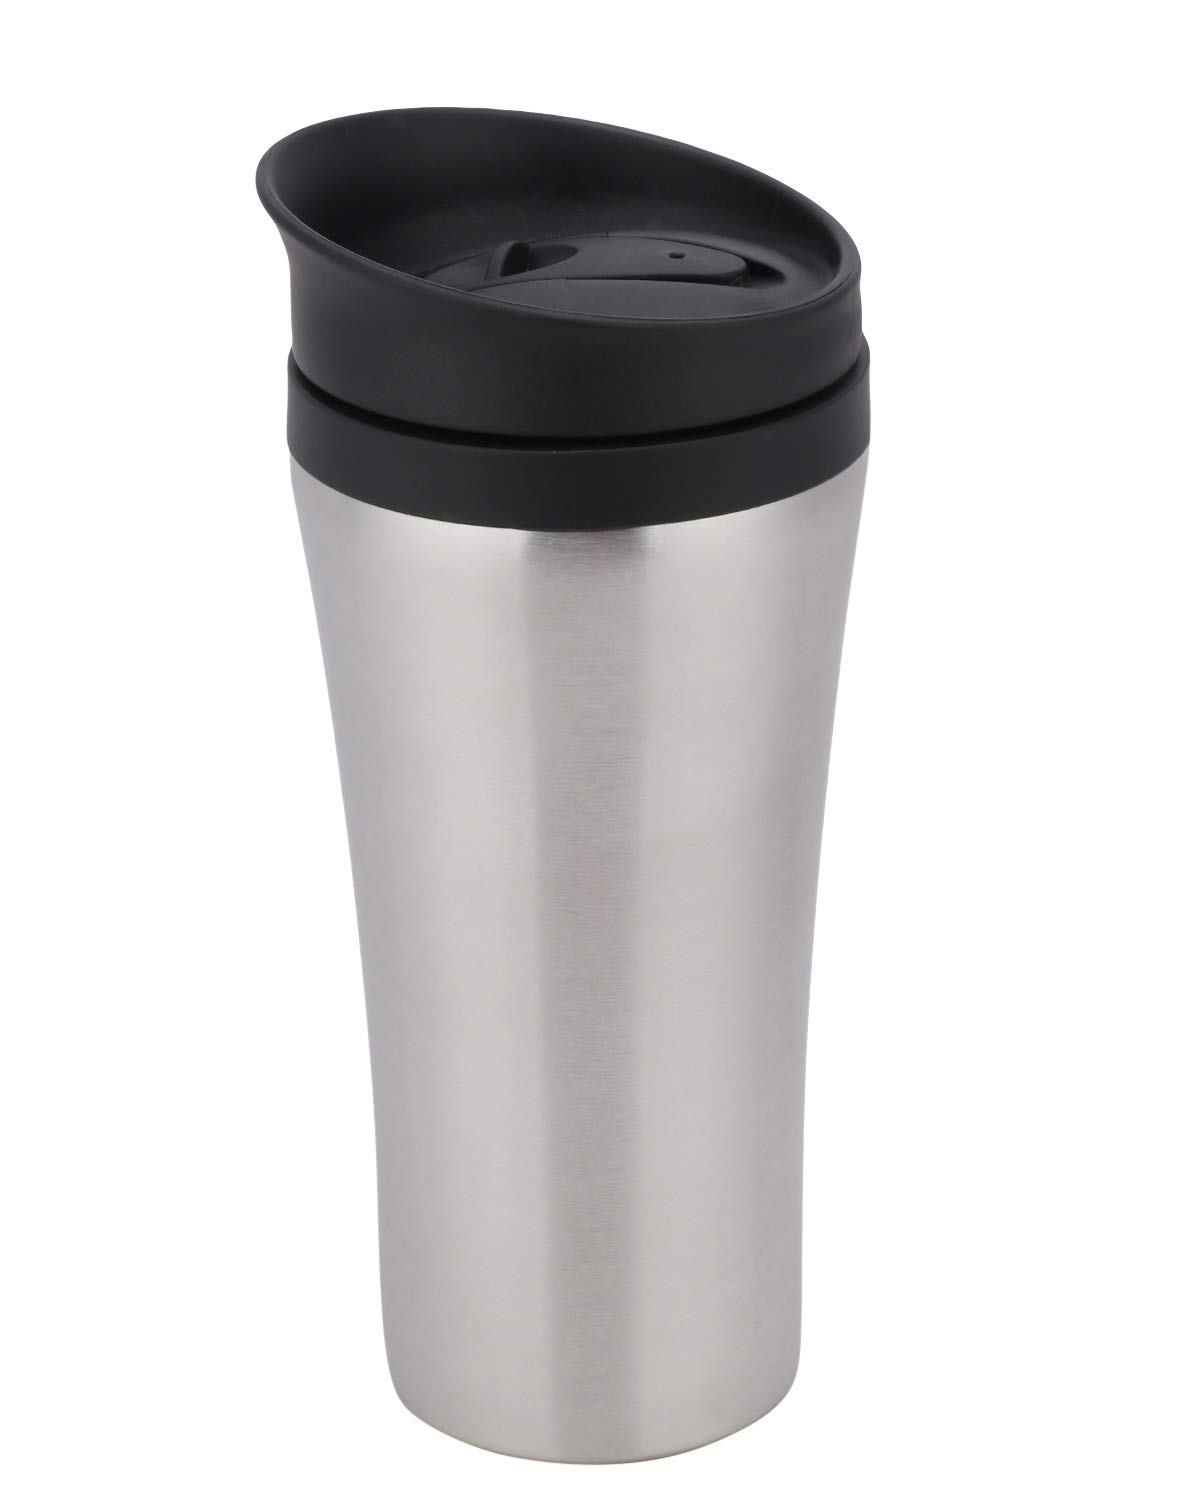 3c43472ffc Menzy Friend Forever Office Sports & Travel Stainless Steel Double Walled  Vacuum Insulated Tea Or Coffee Mug With Lid, Hot Tea Cofee and Icy Cold  Juice ...